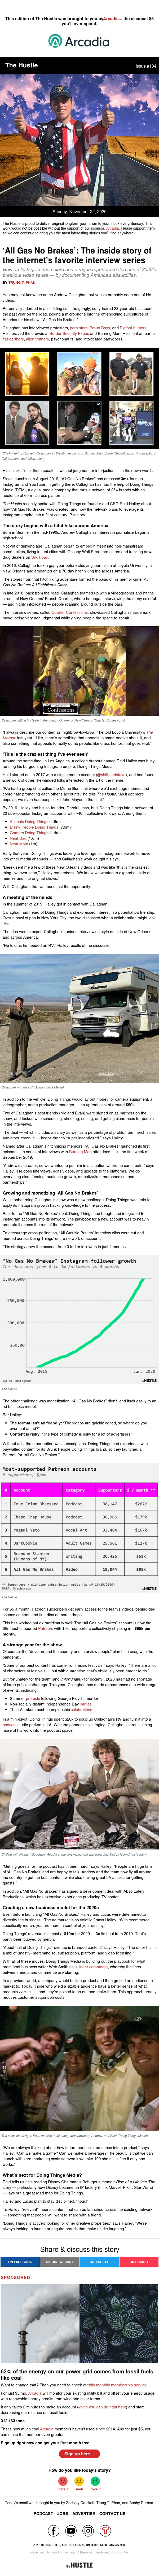 "How ""All Brakes No Gas"" went from 0 to 1m Insta followers"